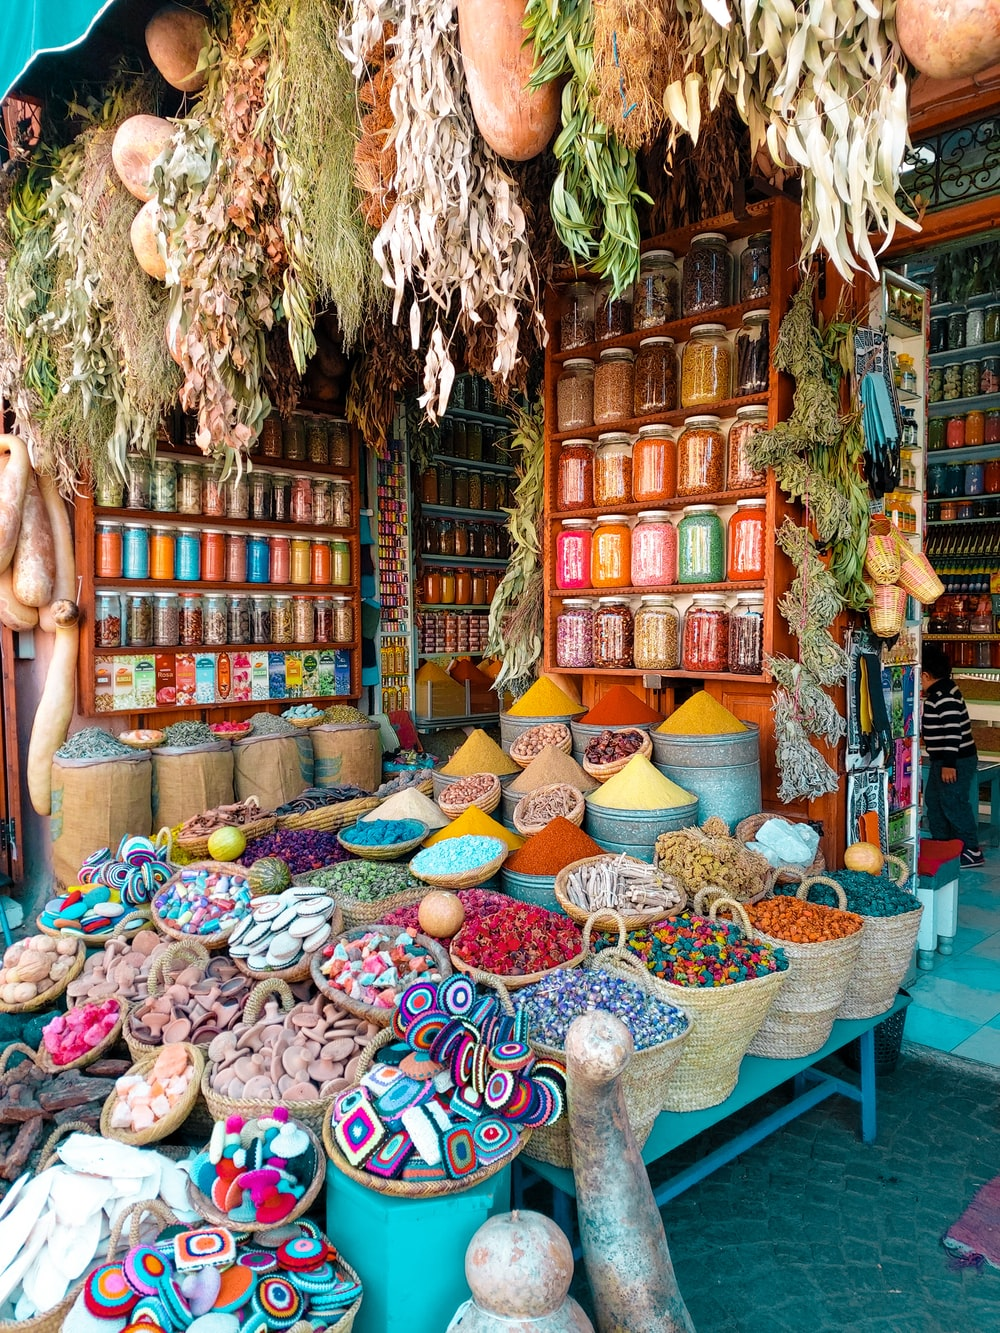 assorted color of wicker baskets on display